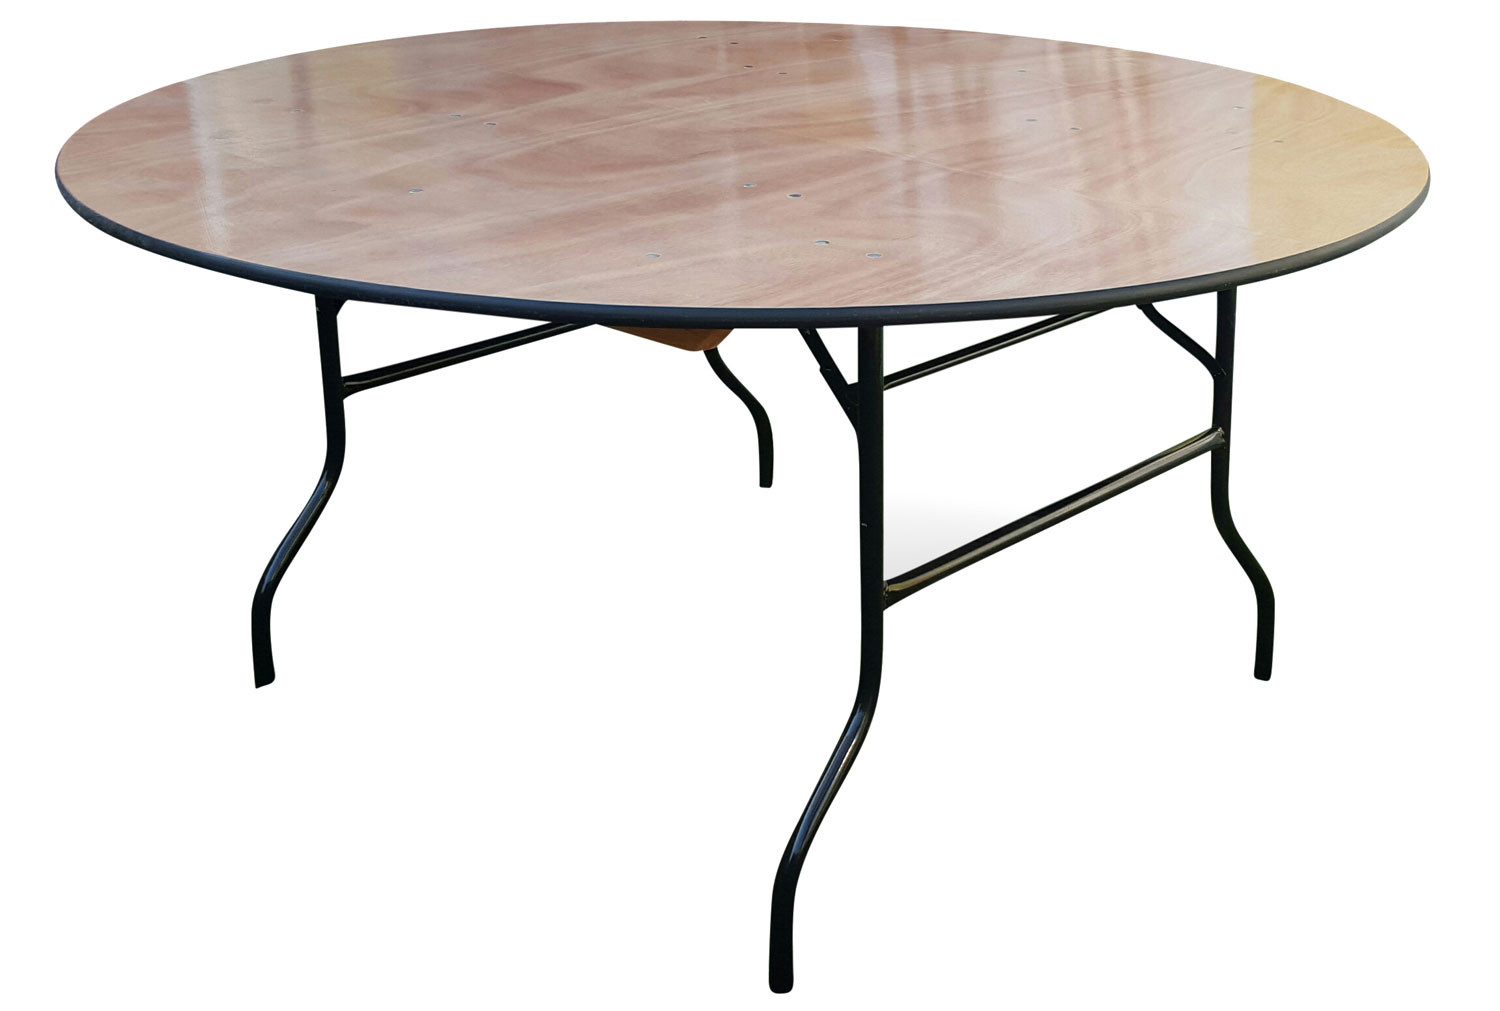 Suttner Round Folding Trestle Table